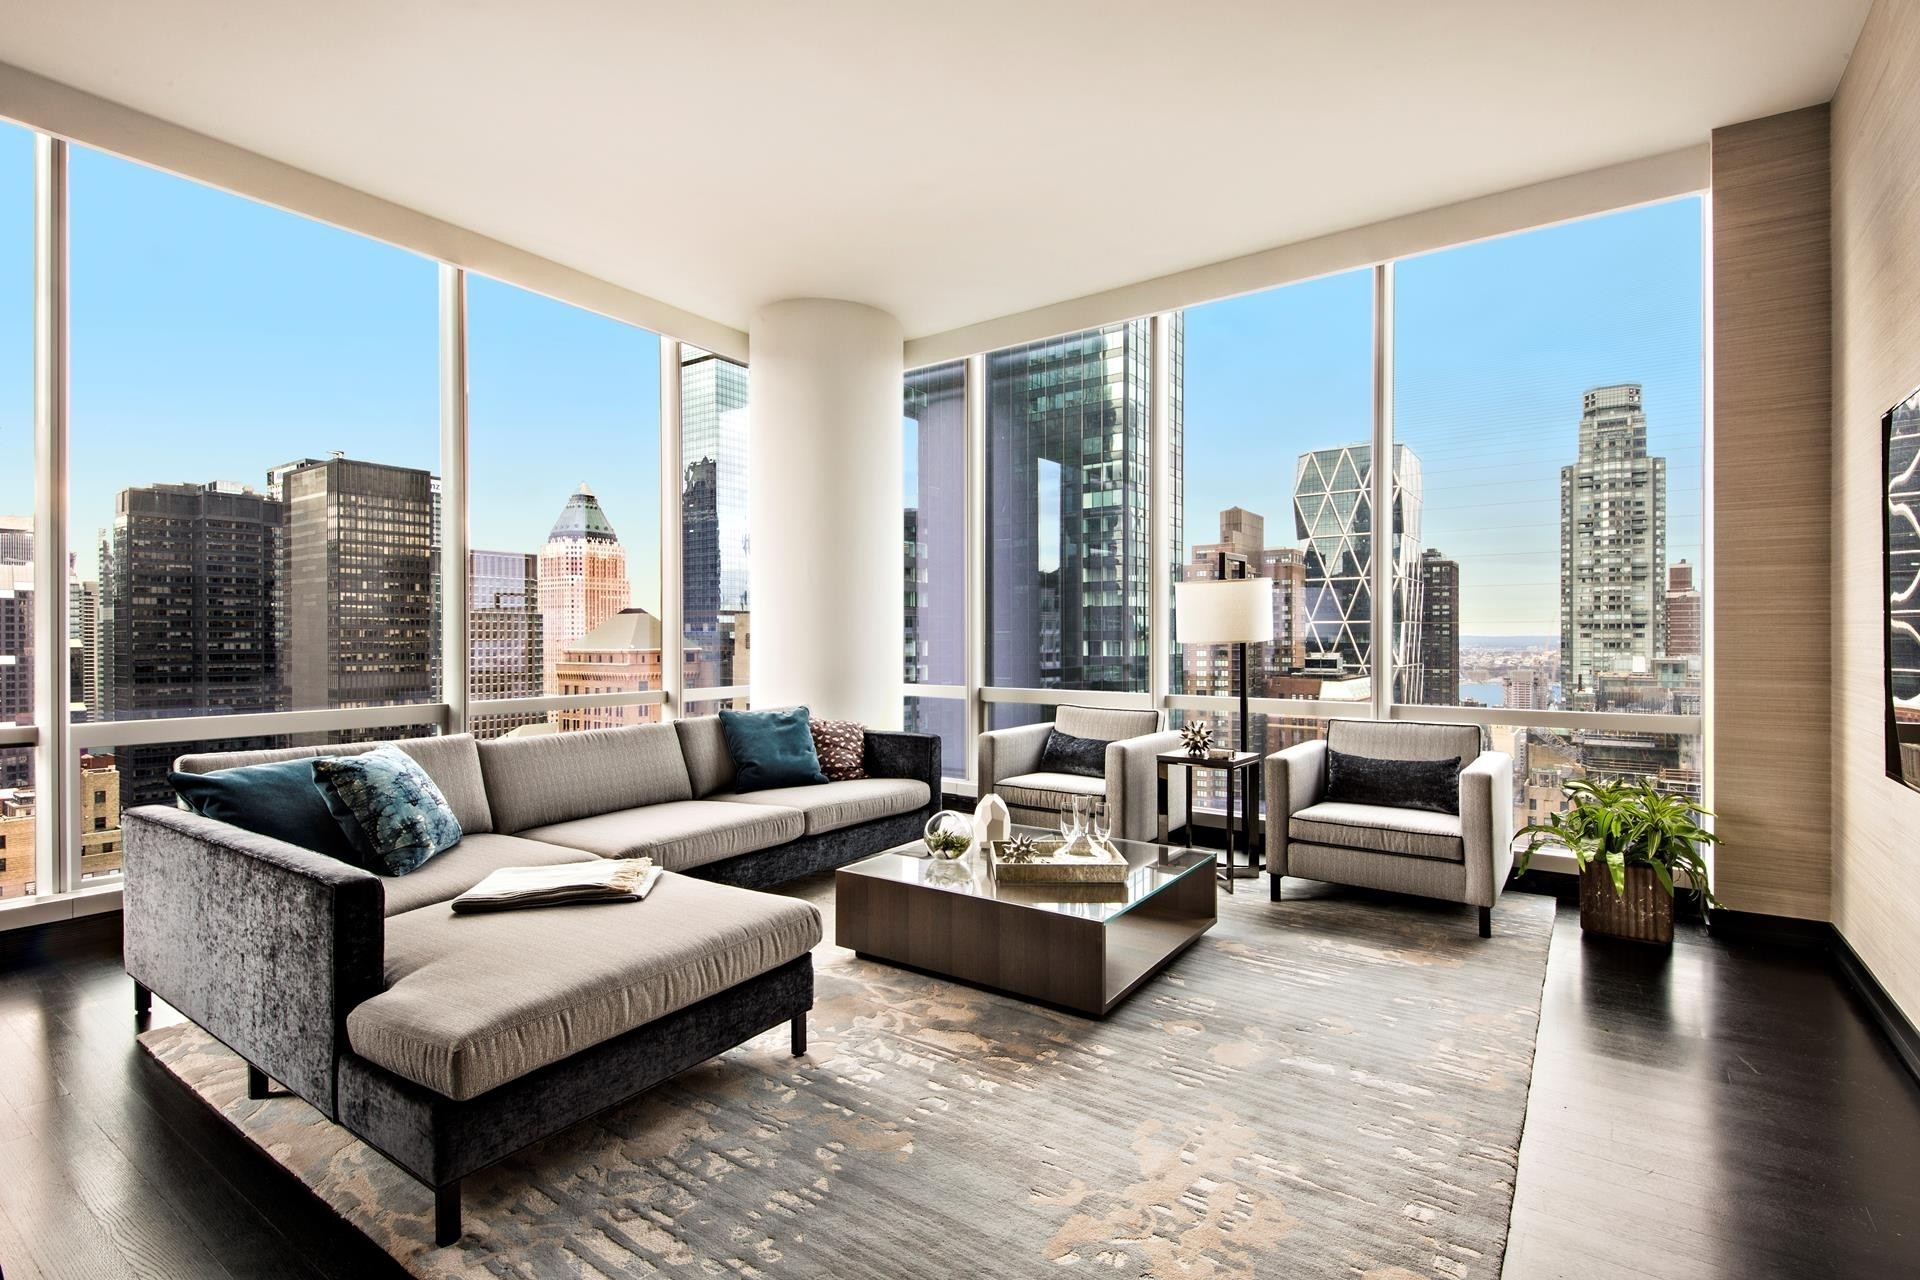 Property à One57, 157 West 57th St, 38C Midtown West, New York, NY 10019